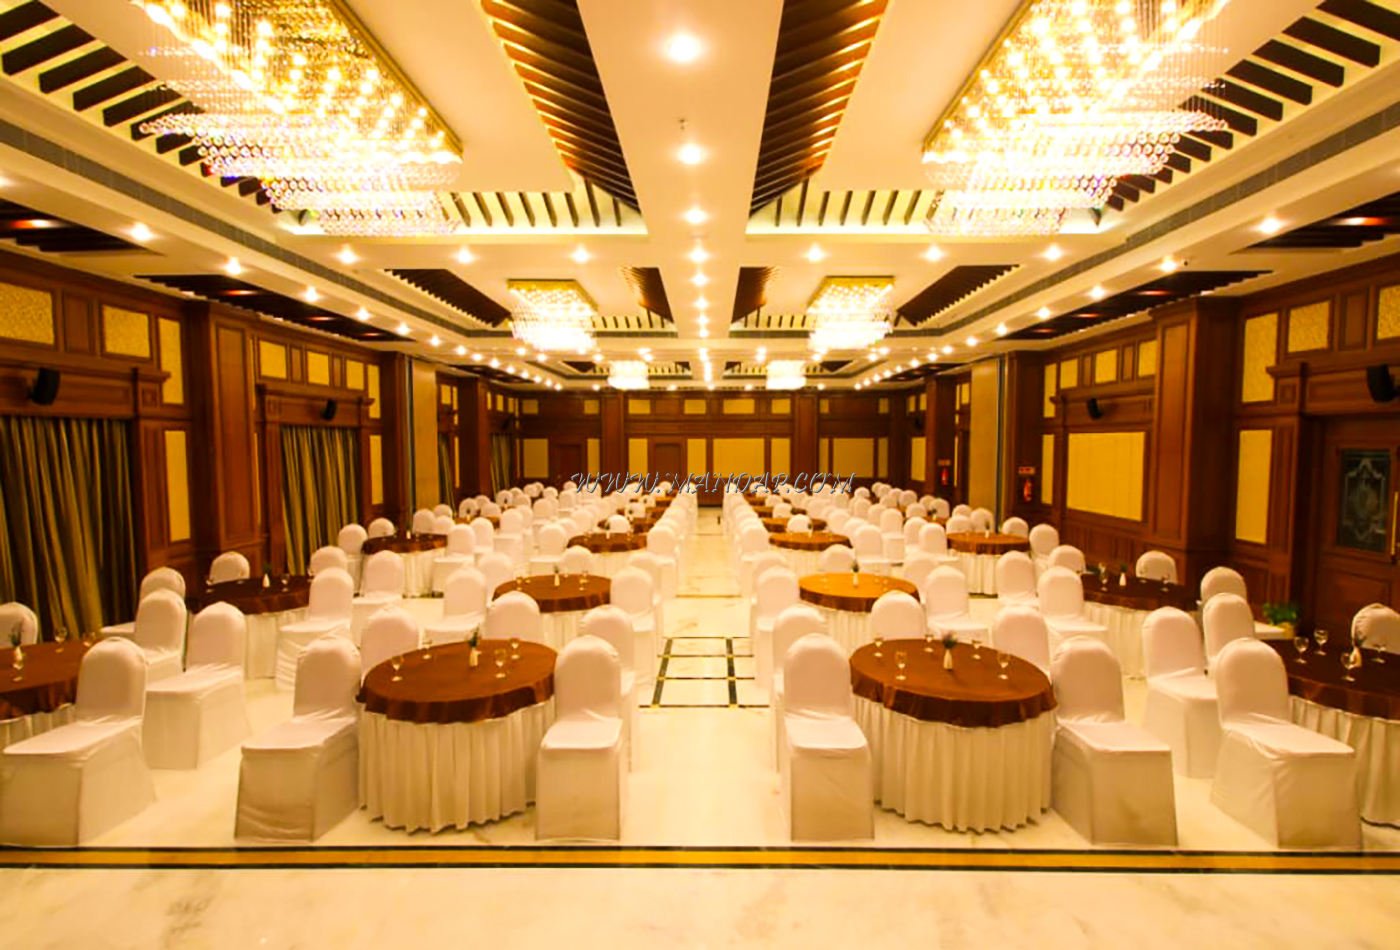 Find the availability of the Shenbaga Hotel And Convention Hall 2 (A/C) in Muthialpet, Pondicherry and avail special offers